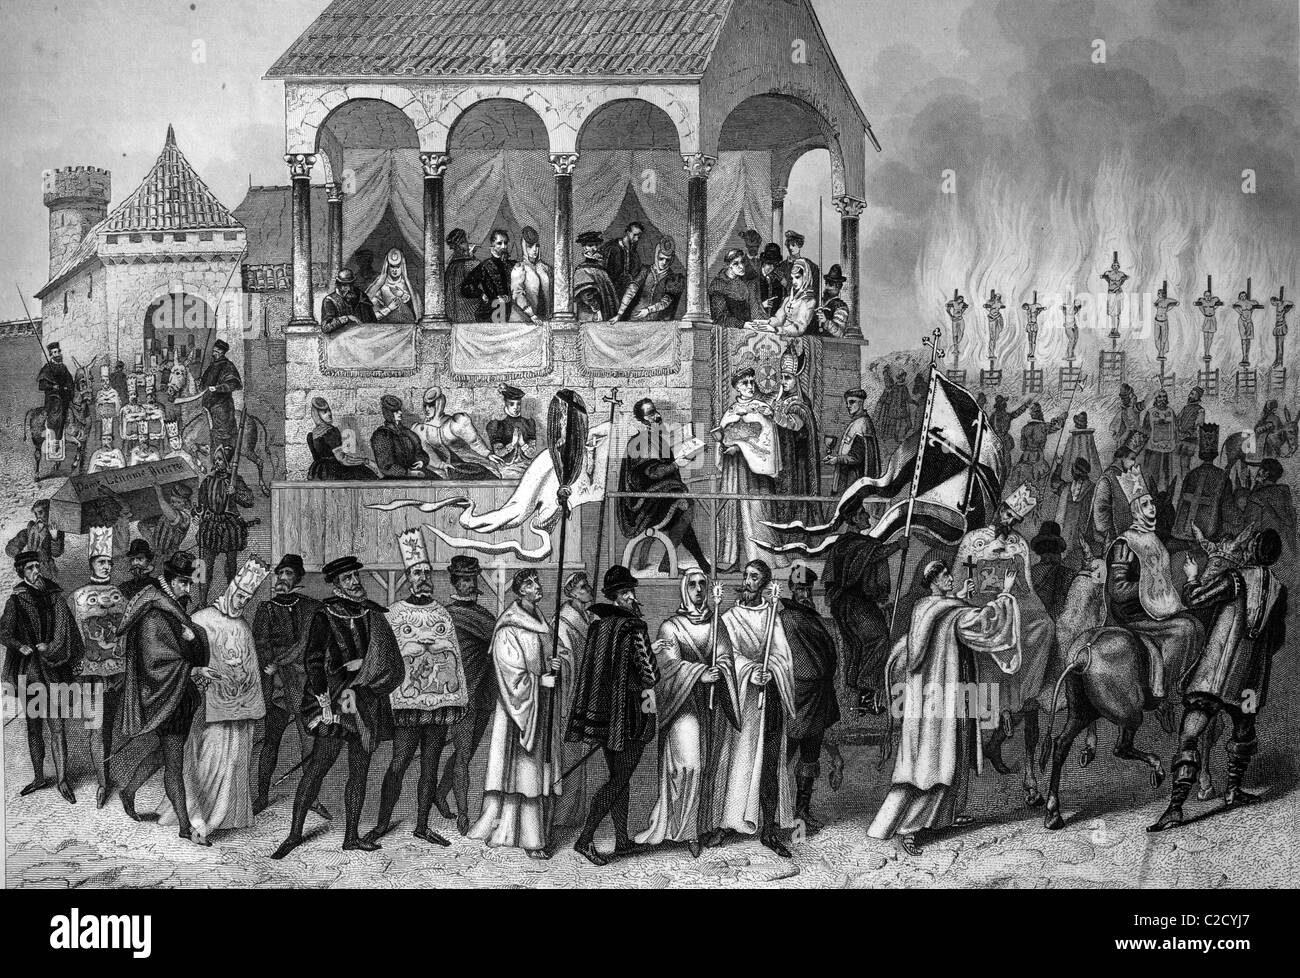 spanish inquisition The aim of the spanish inquisition was to find people who didn't practise christianity it was responsible for around 5000 deaths over a period of 350 years.